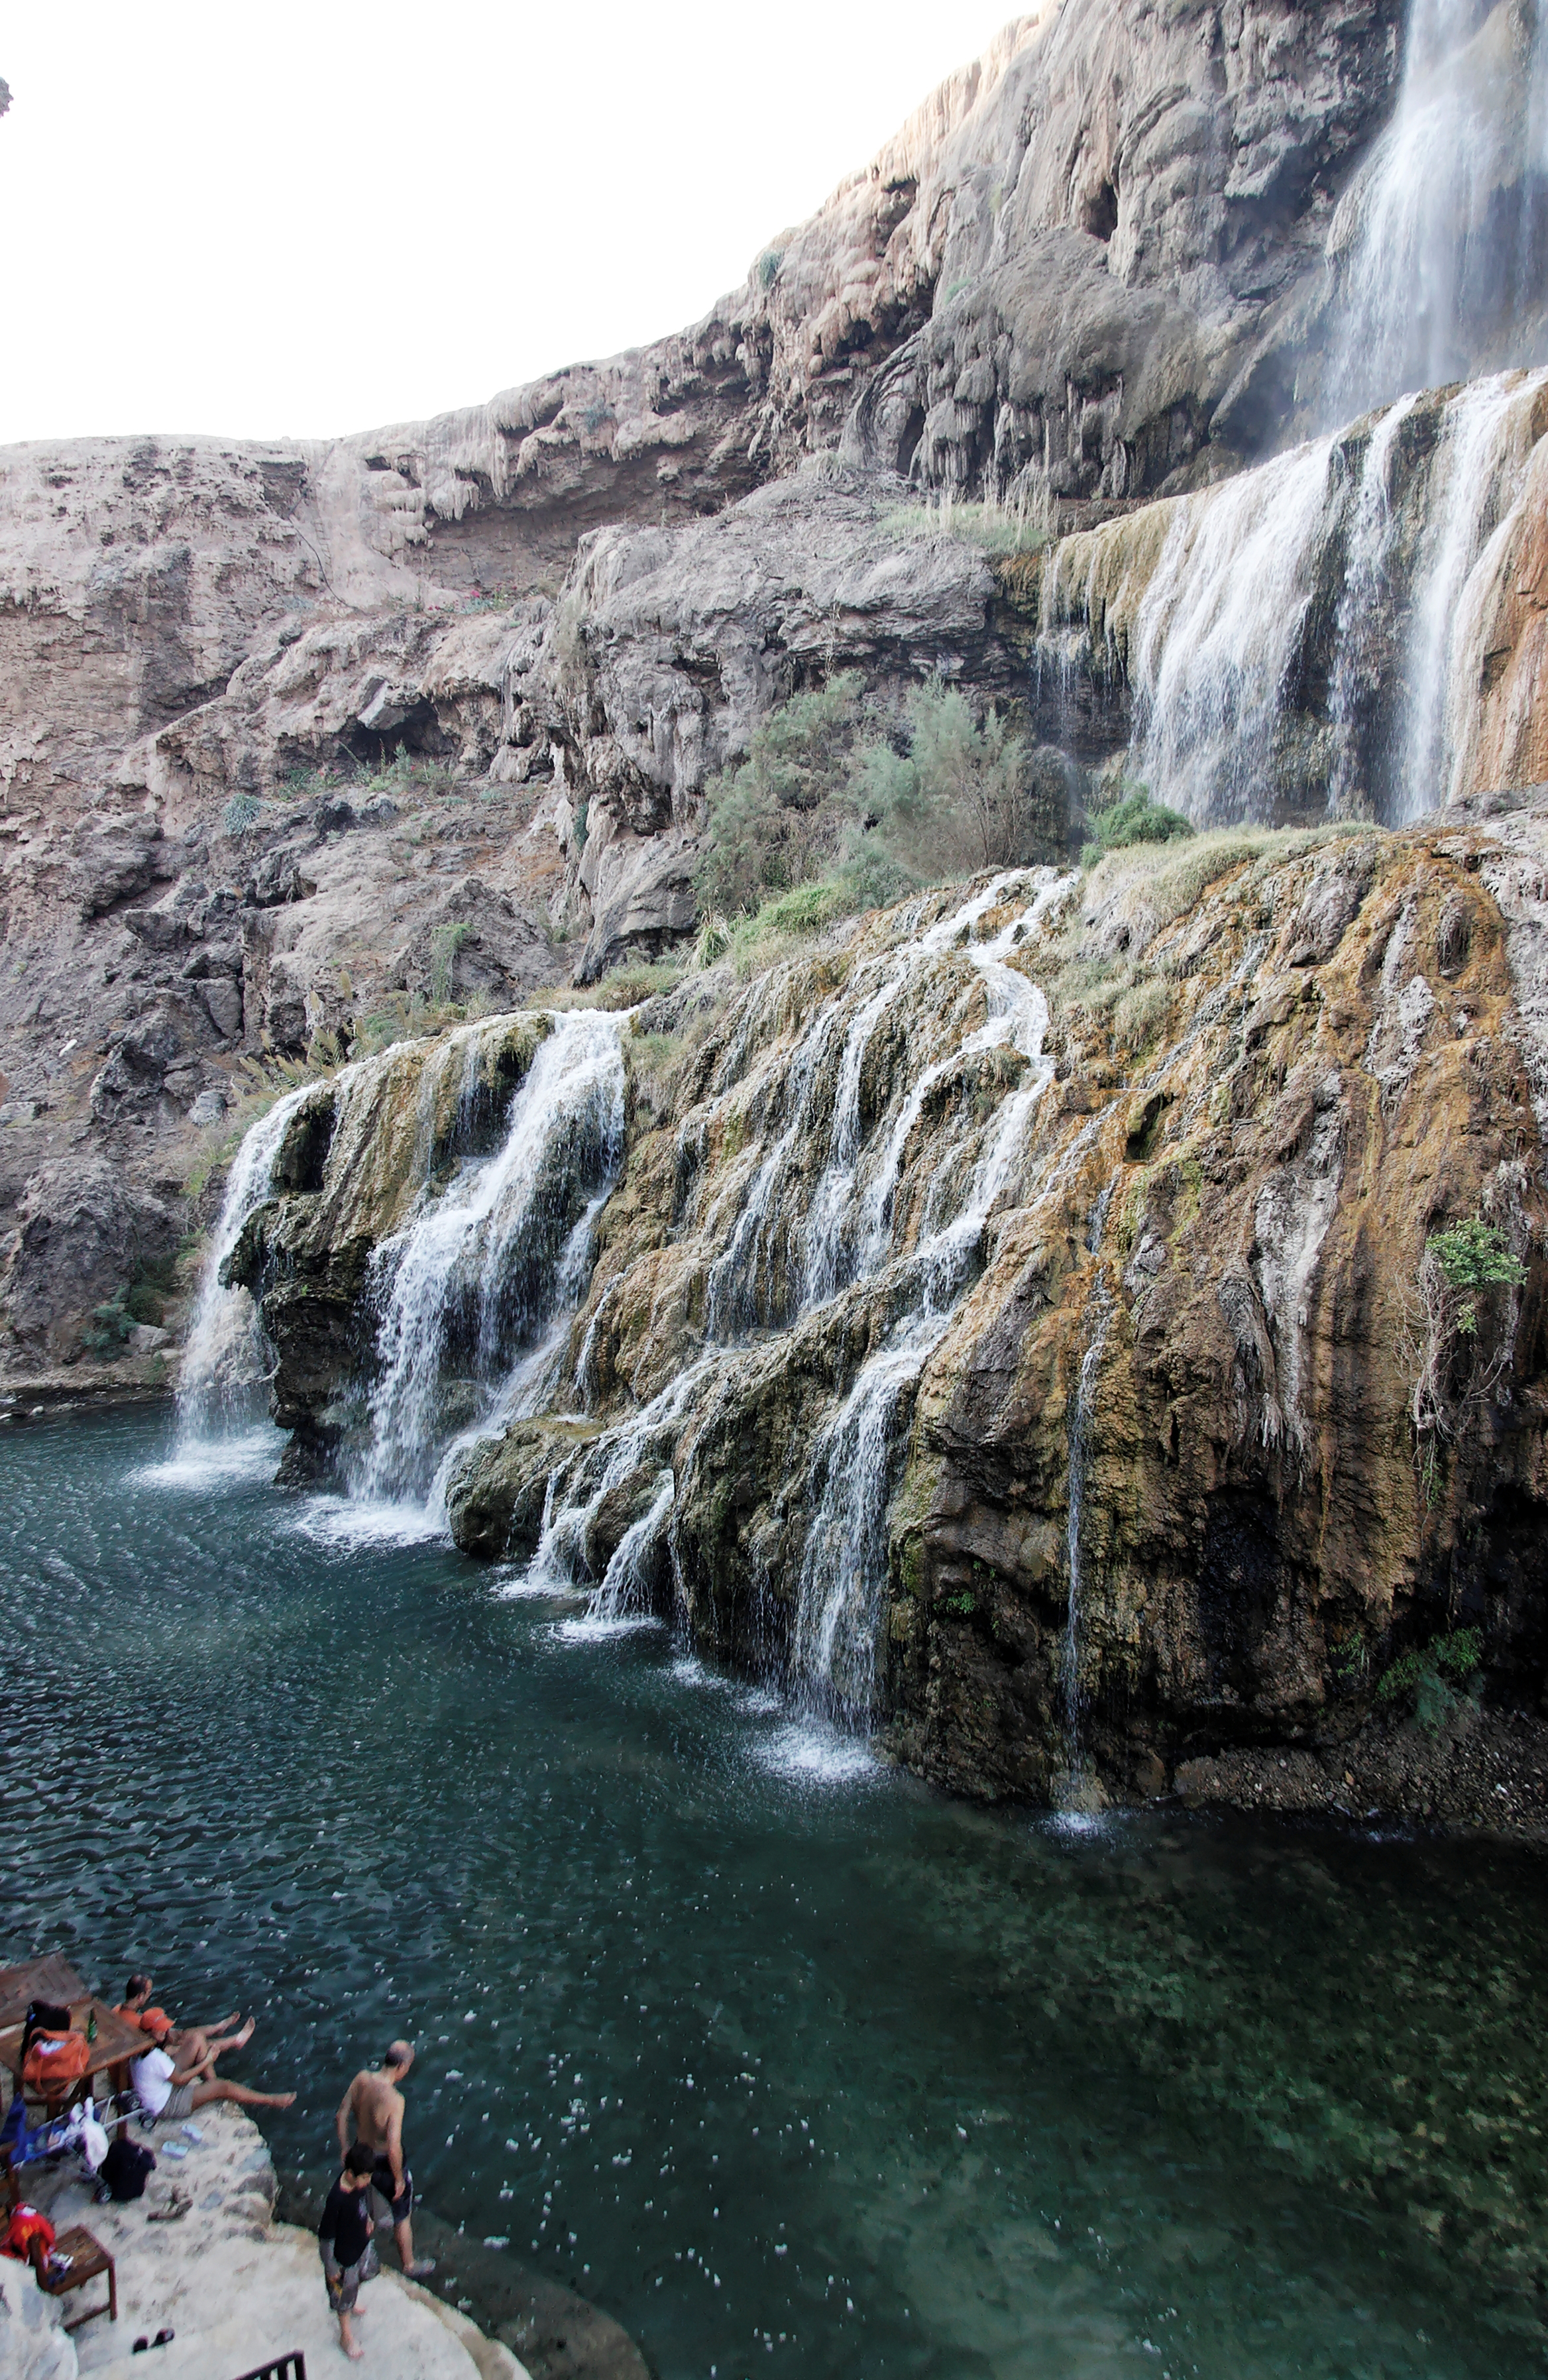 Waterfalls, Hammamat Ma'in Jordan 3.jpg - Waterfalls